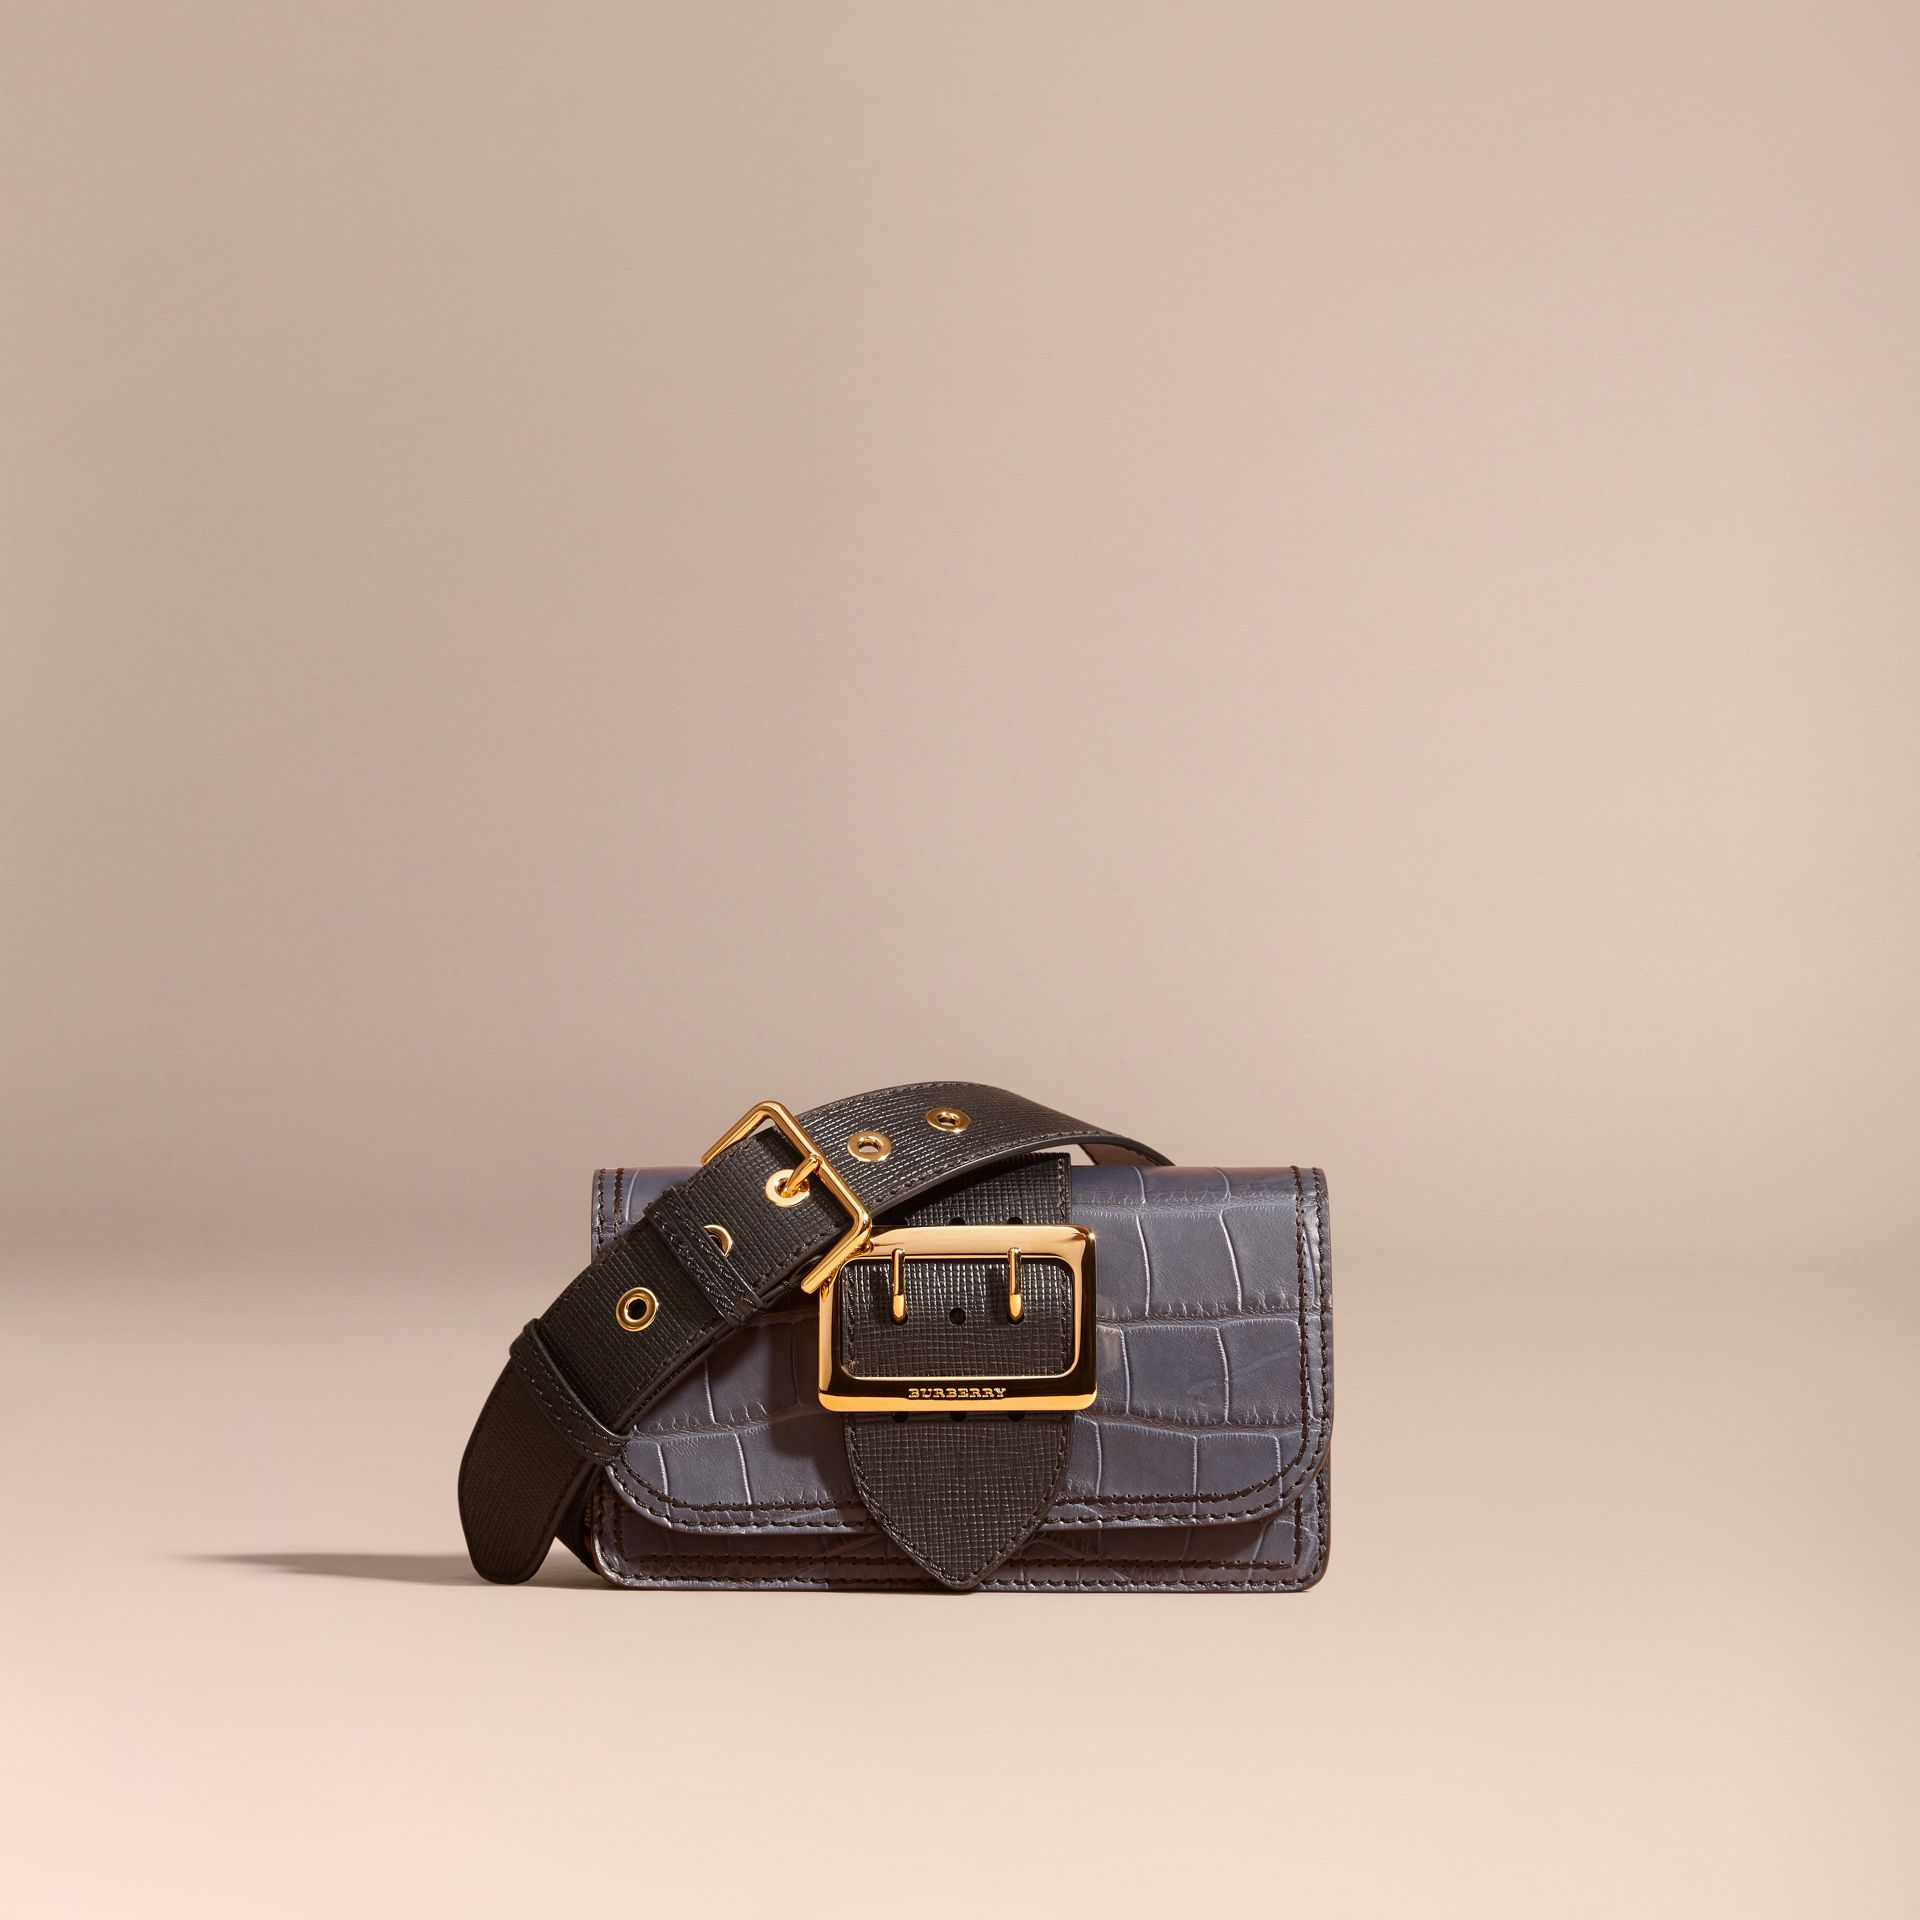 Petit sac The Buckle en alligator et cuir Marine/noir - photo de la galerie 9